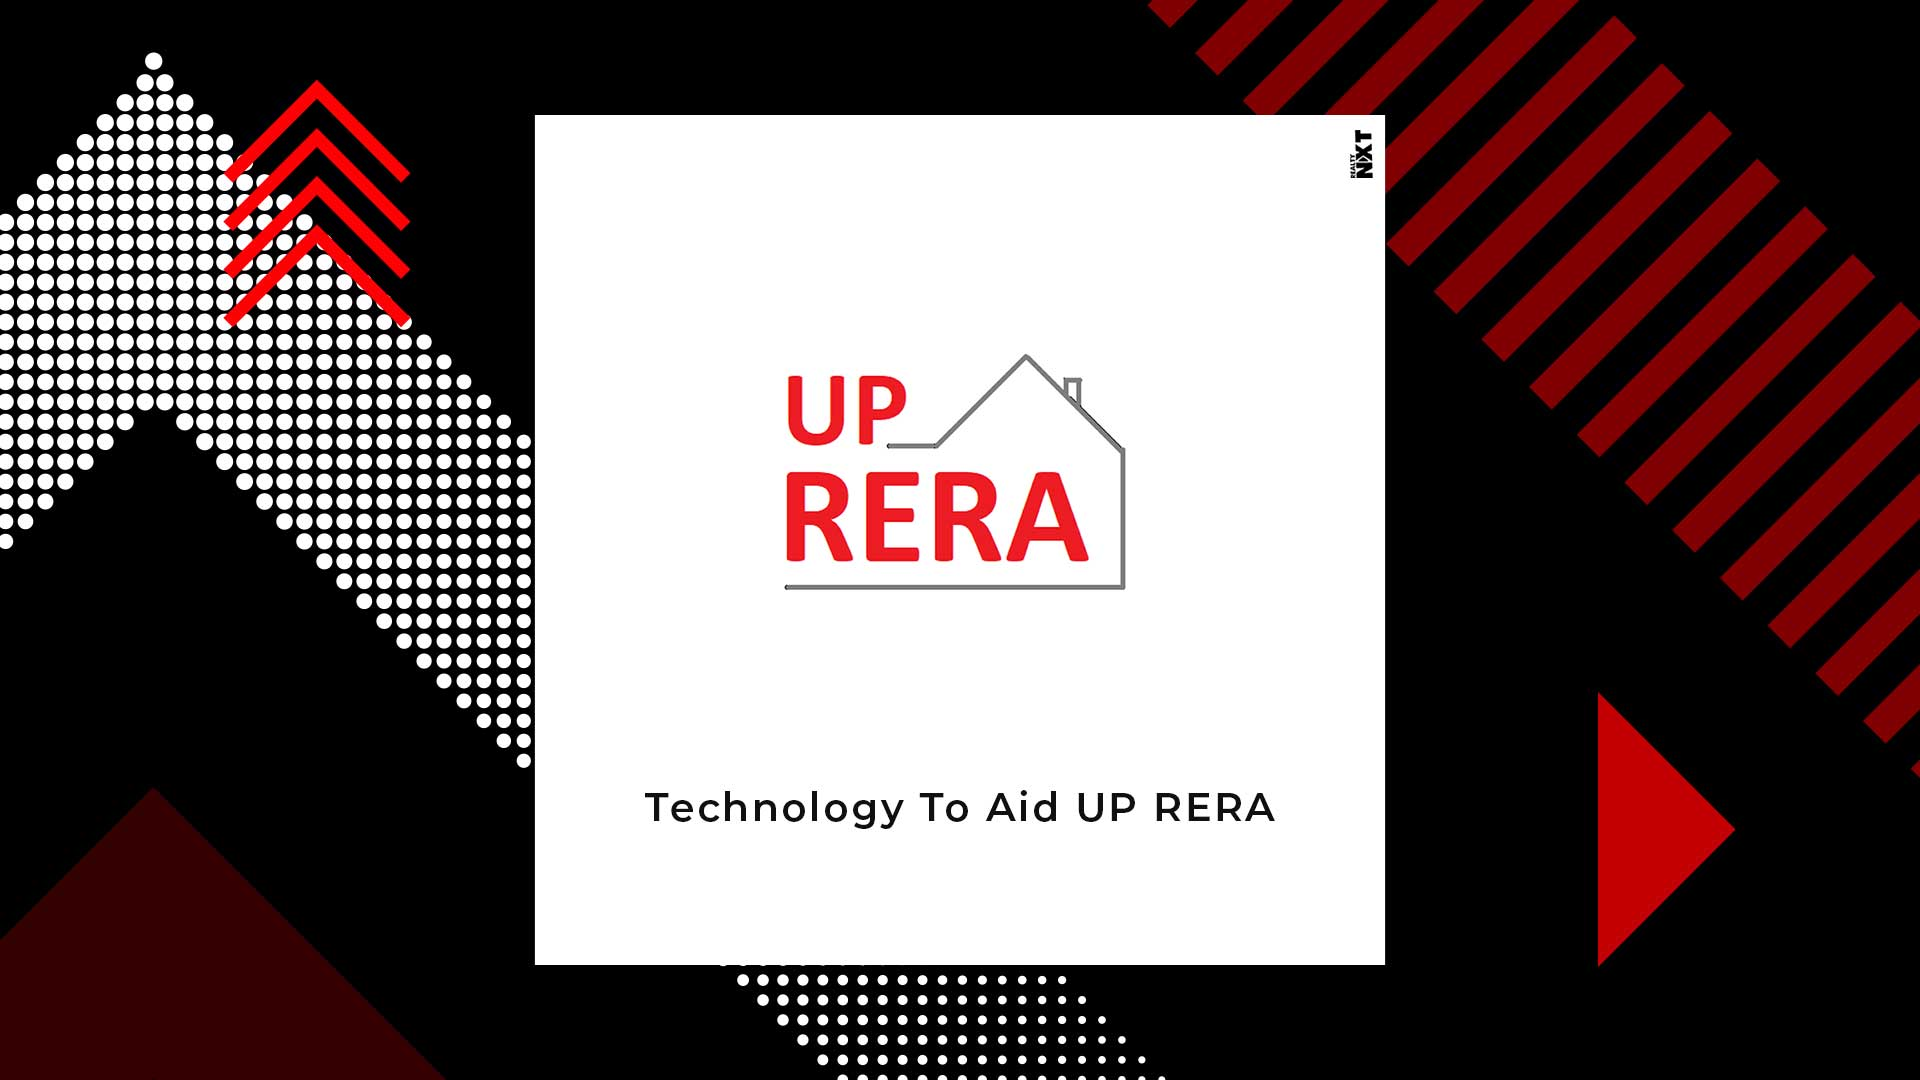 UP RERA To Recognise Illegal Buildings Via Satellite Imaging